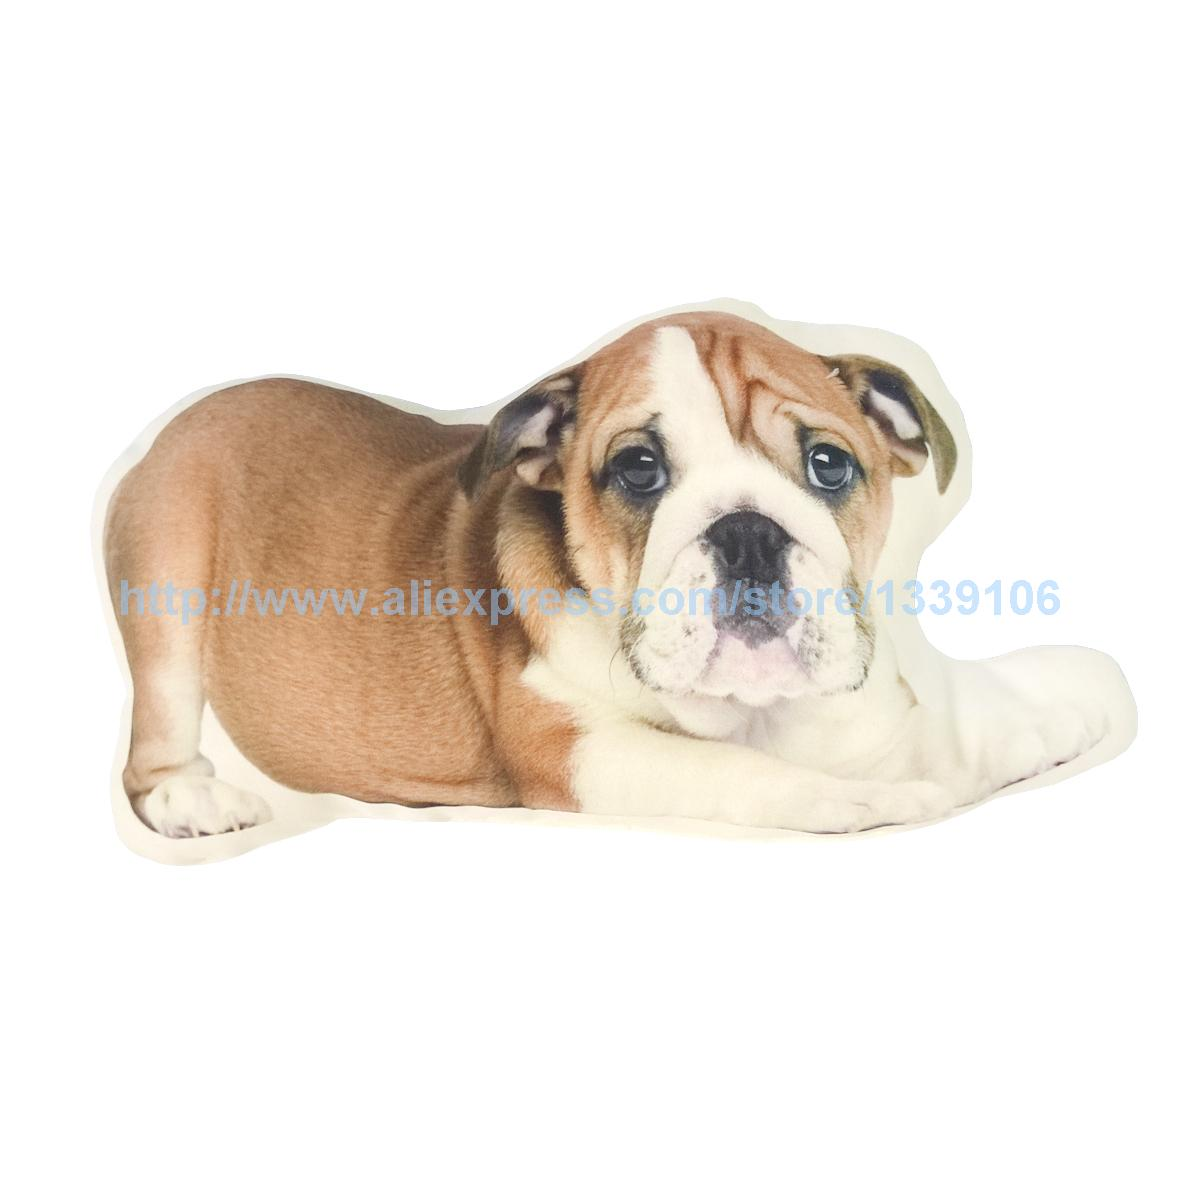 Popular Pets Pillows-Buy Cheap Pets Pillows lots from China Pets Pillows suppliers on Aliexpress.com